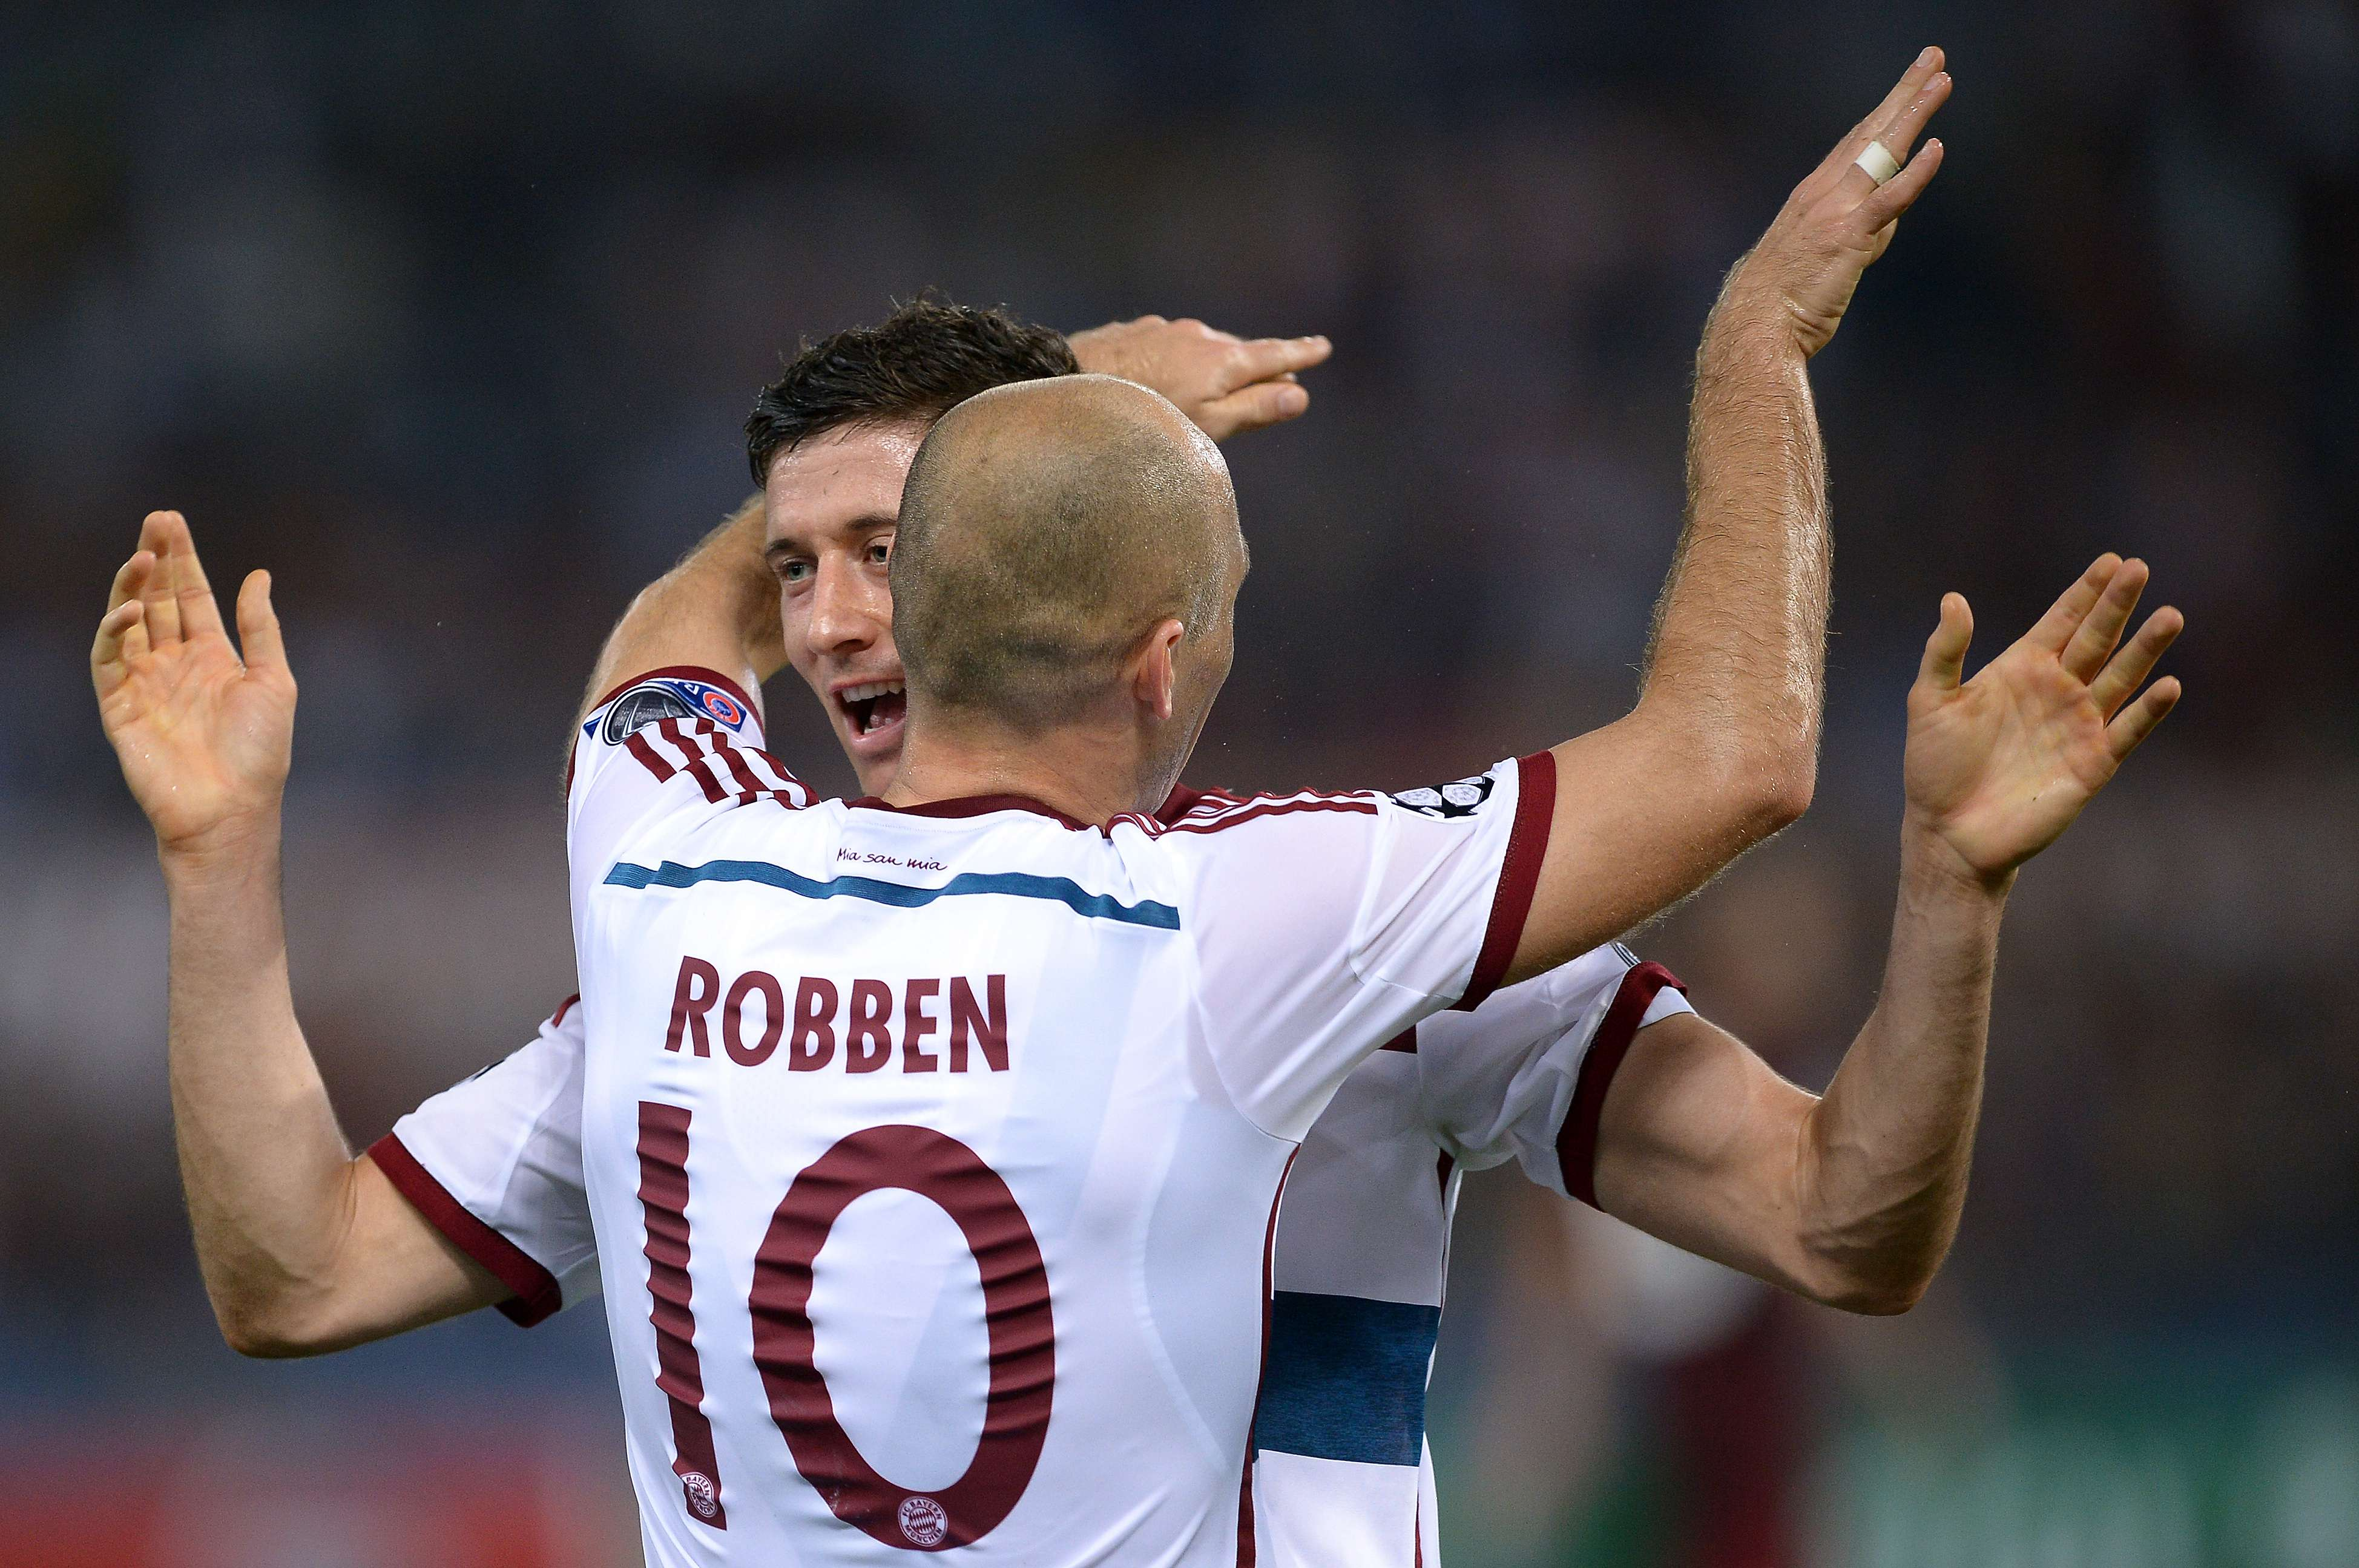 Robben ganha o abraço do artilheiro Lewandowski em mais uma vitória do Bayern Foto: Filippo Monteforte/AFP